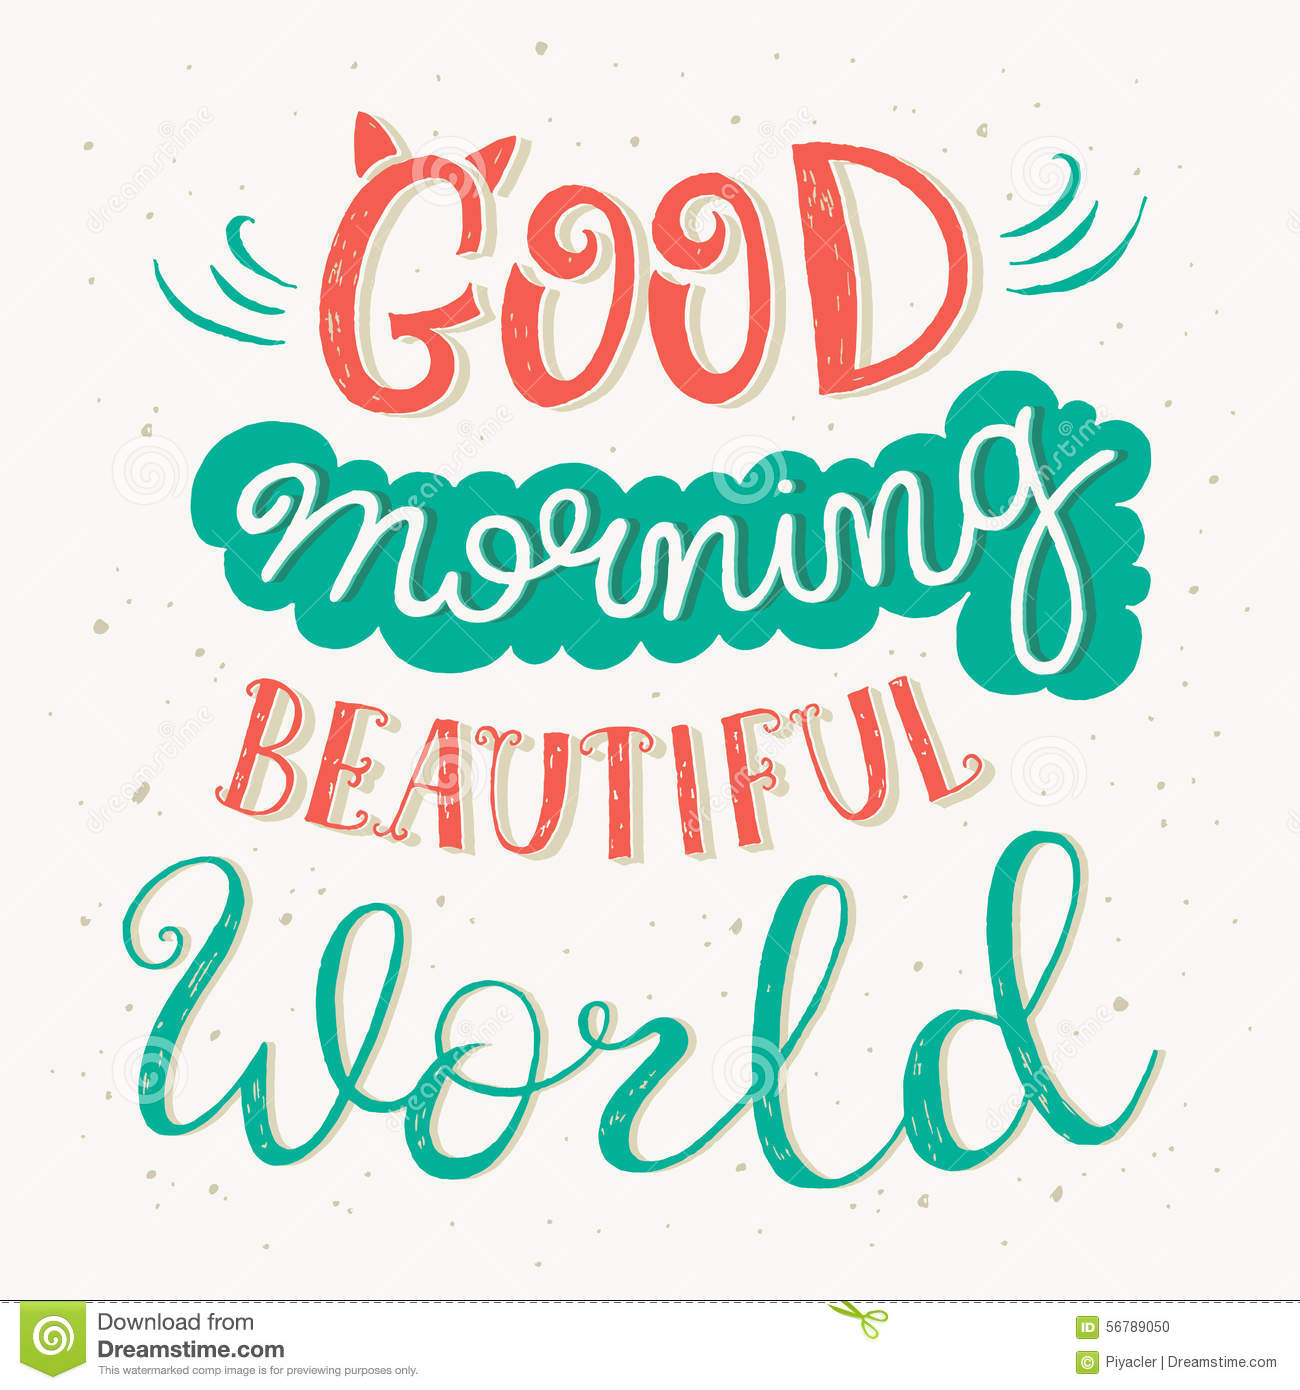 Good Morning Vintage Quotes : Good morning beautiful world quote stock vector image